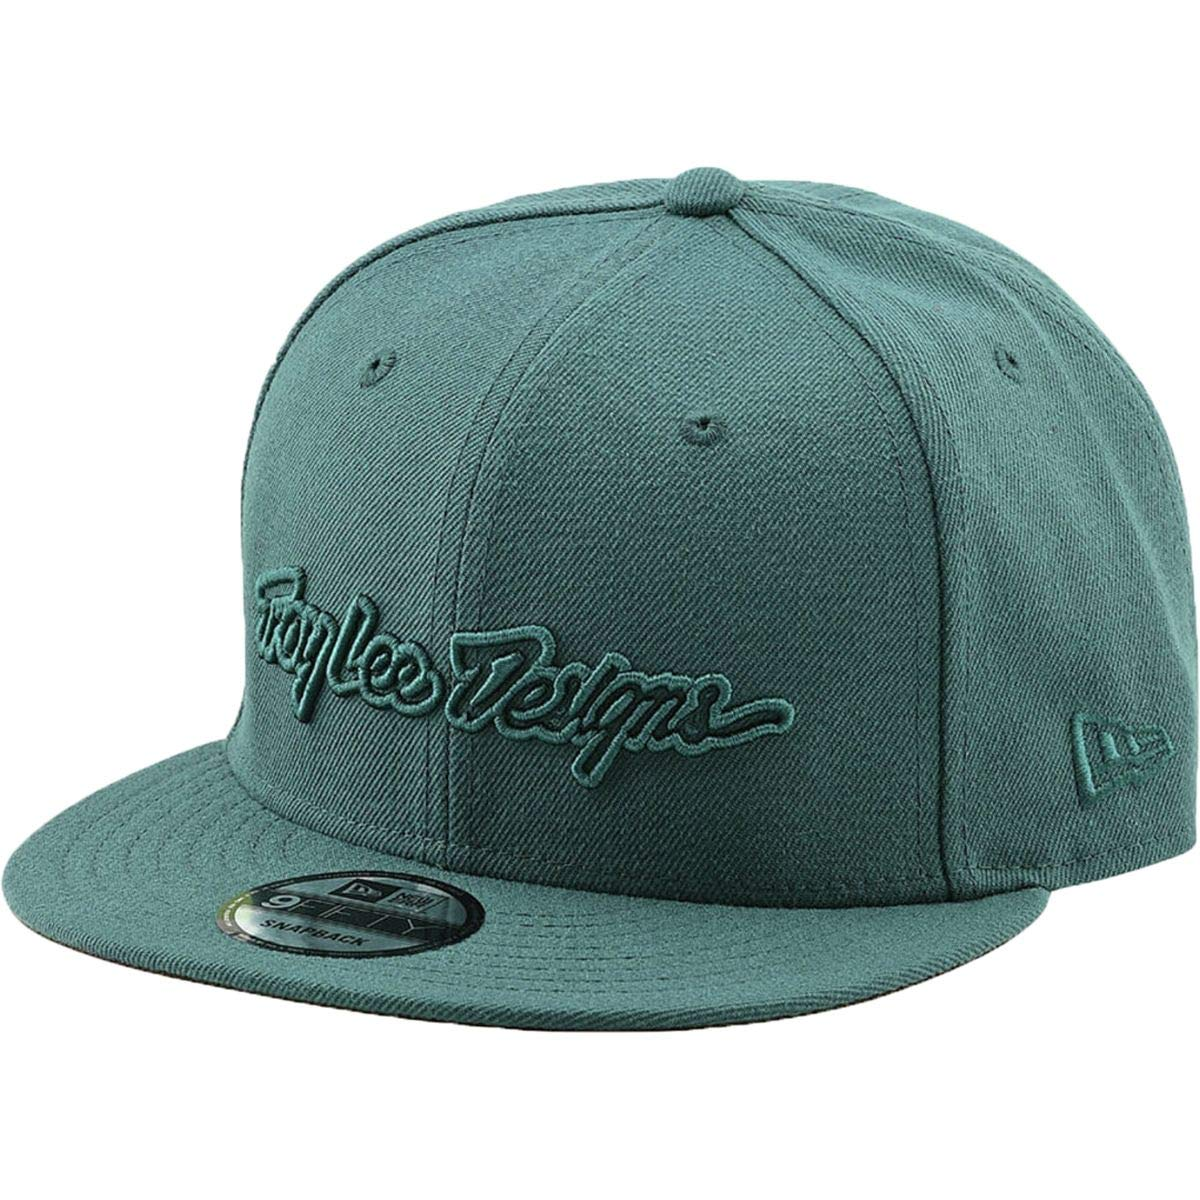 9072ef24964 Amazon.com  Troy Lee Designs Classic Signature Snapback Cap Blockworks Pine  Needle Green